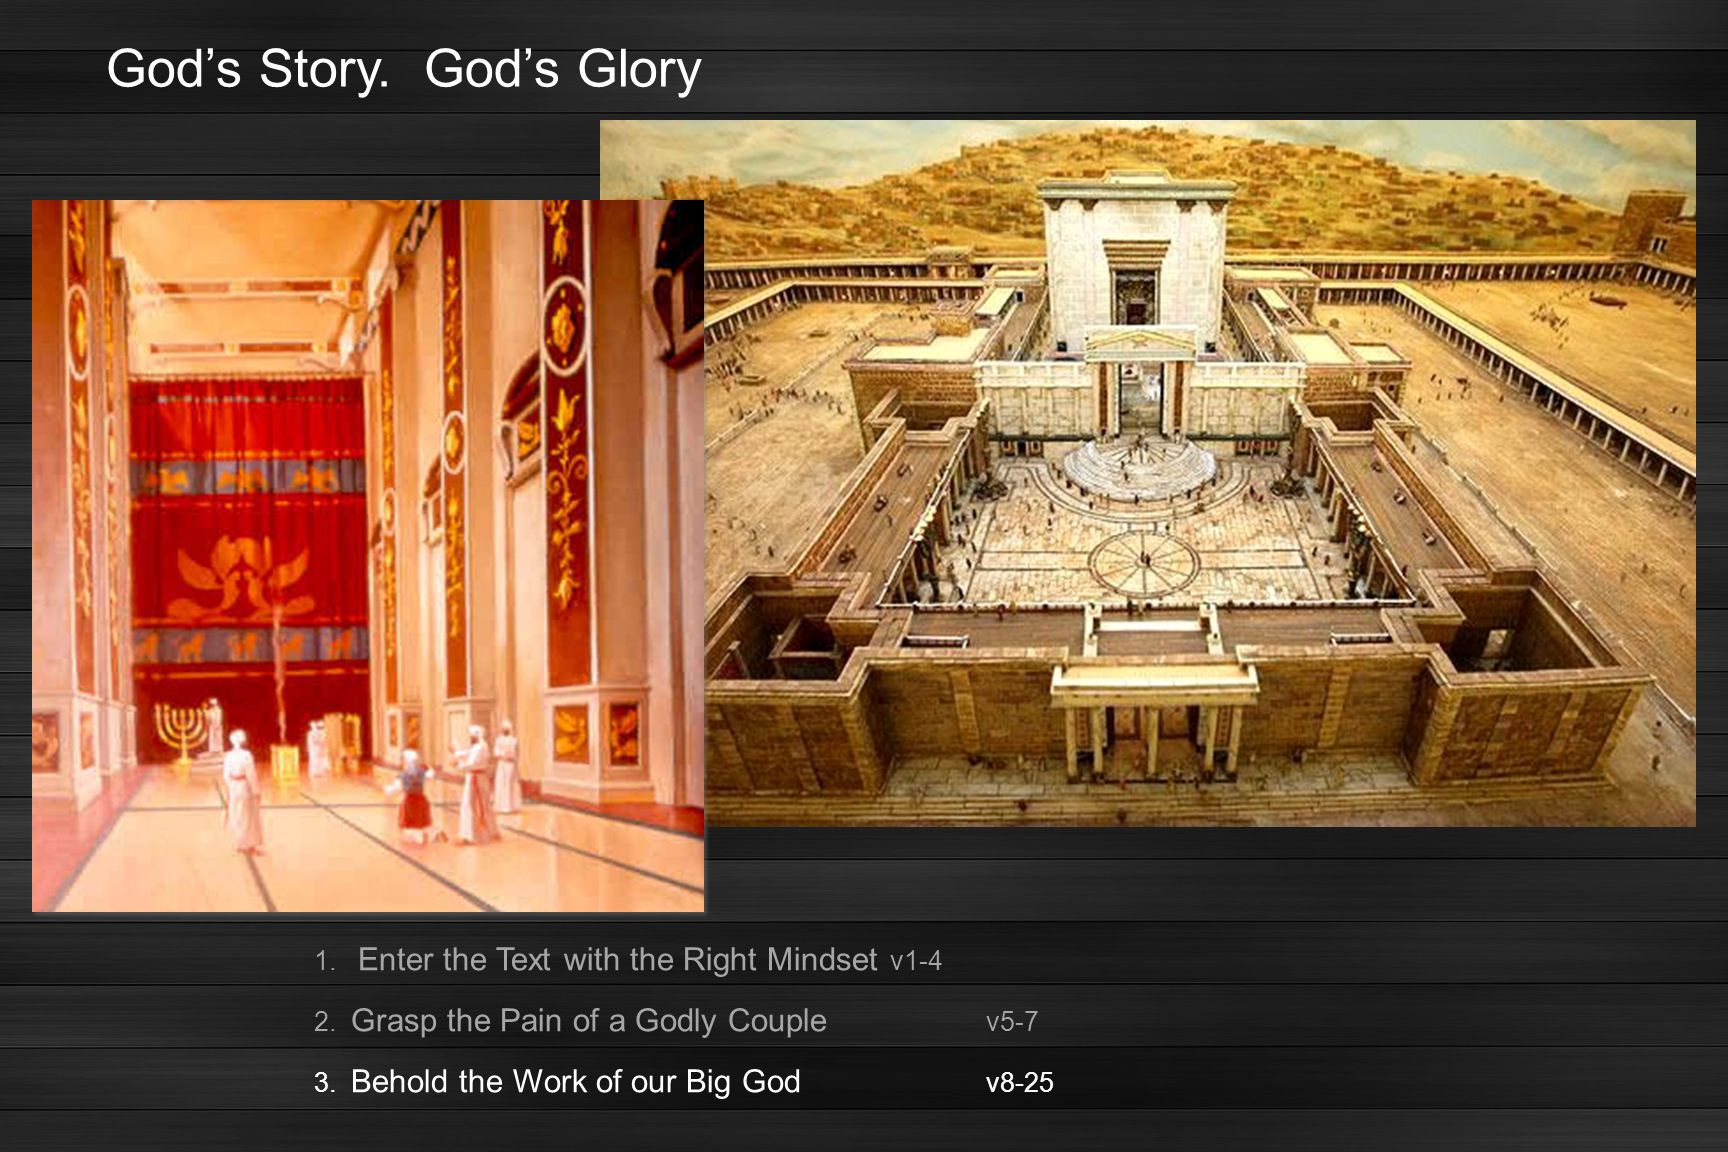 God's Story. God's Glory 1. Enter the Text with the Right Mindset v1-4 2. Grasp the Pain of a Godly Couple v5-7 3. Behold the Work of our Big God v8-2